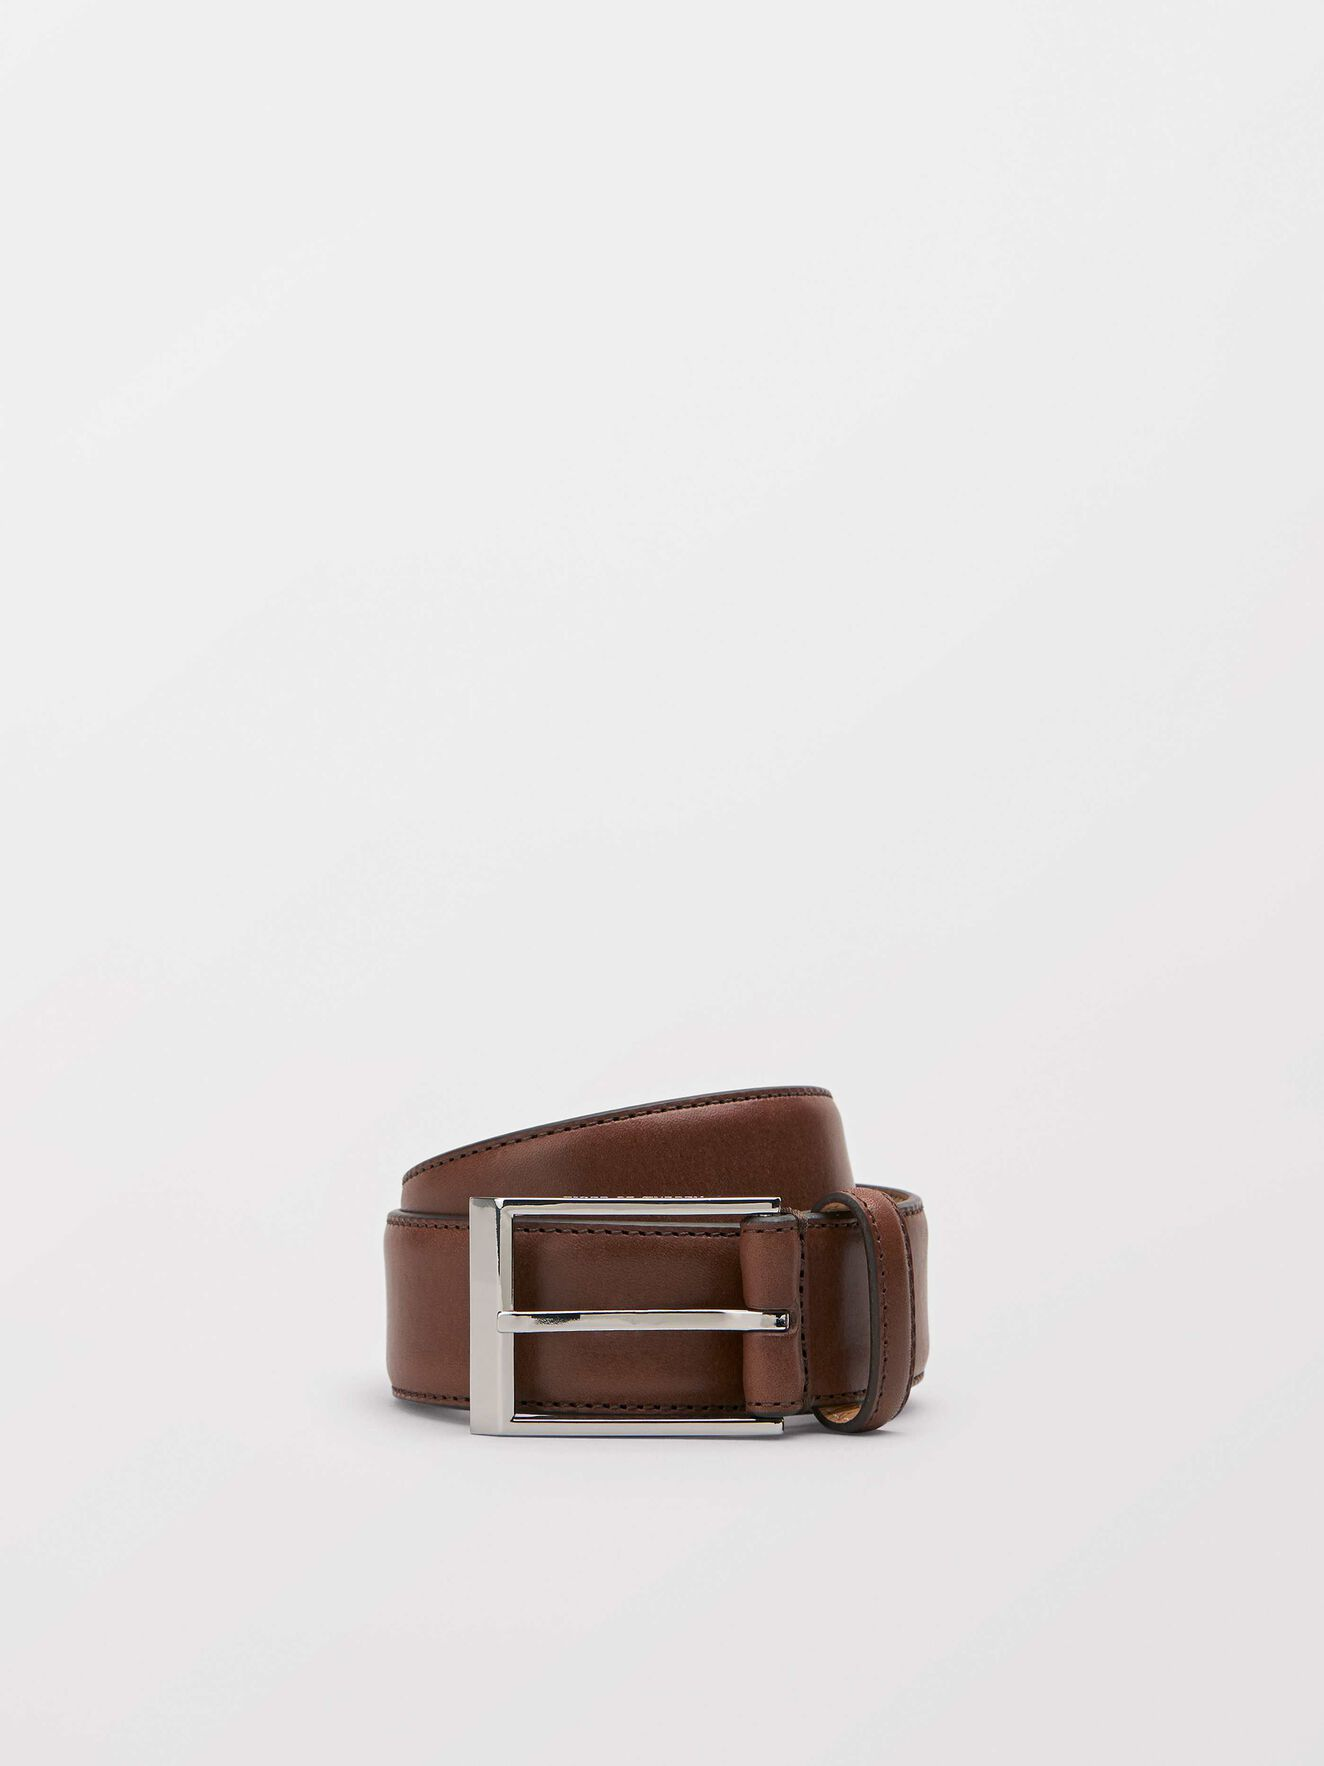 Helmi Belt in Dark Brown from Tiger of Sweden